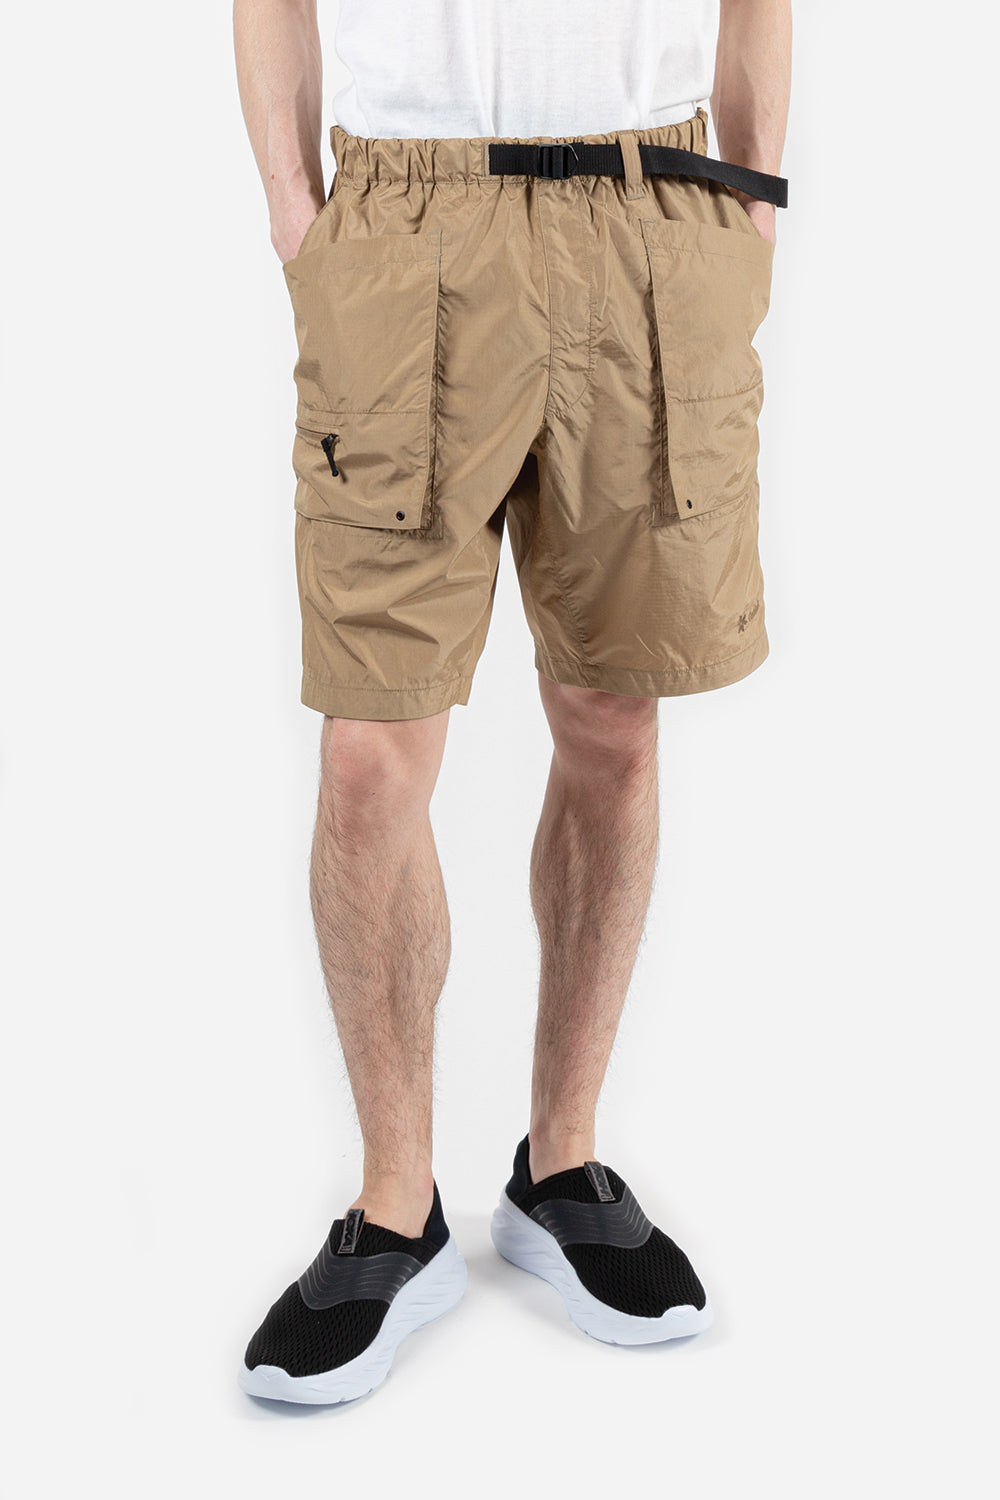 goldwin-element-mount-cargo-shorts-clay-beige